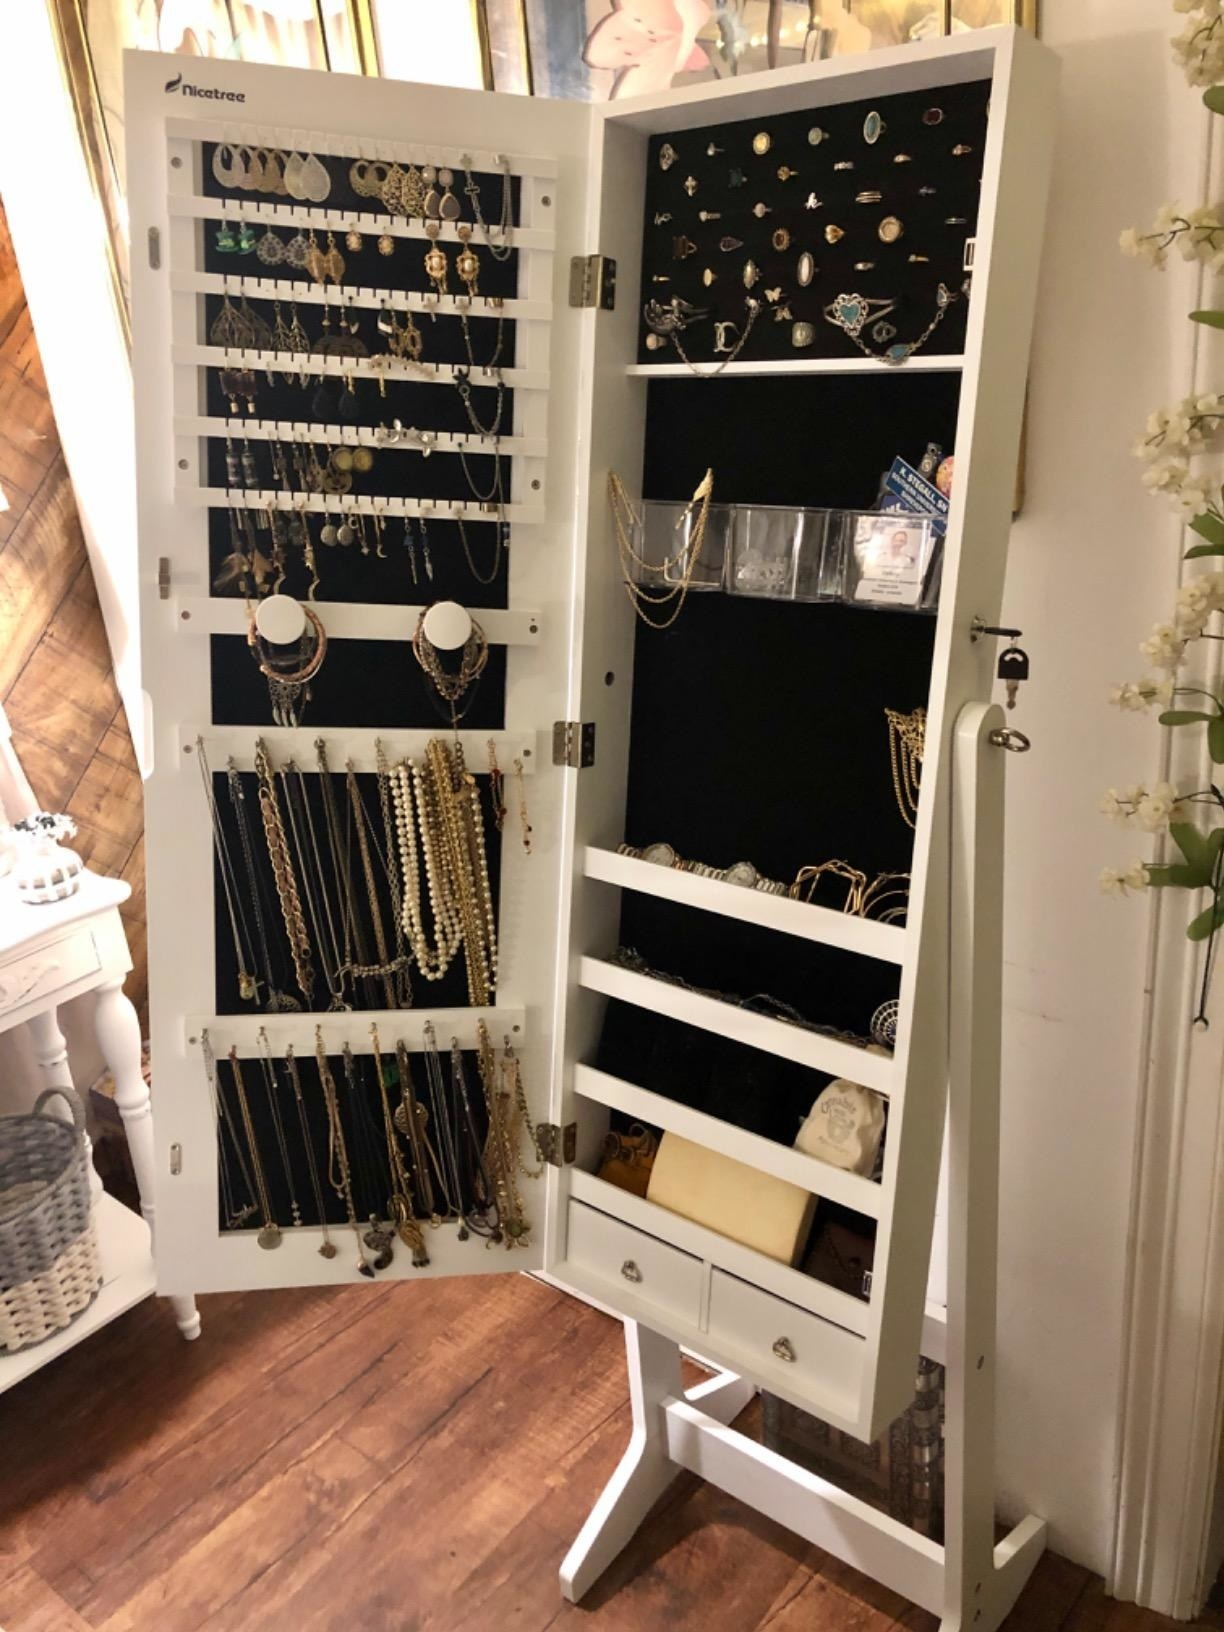 A reviewer showing the mirror rack which opens up to reveal rows of racks for earrings, necklaces, and bracelets and two small drawers on the bottom